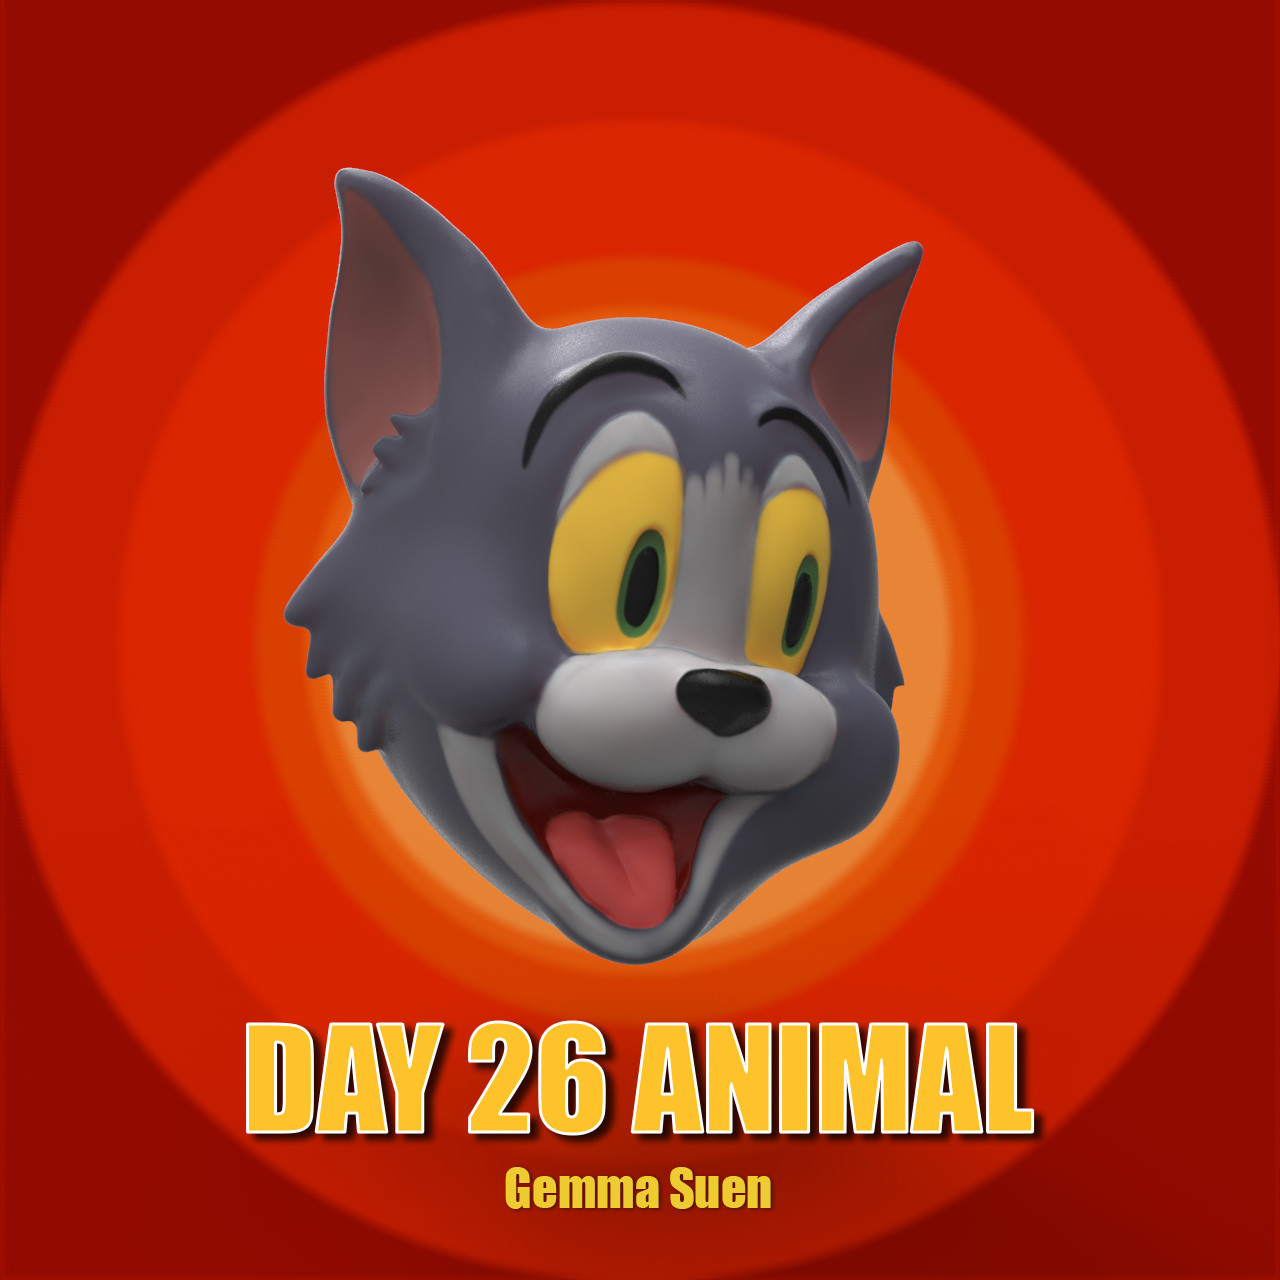 Gemma suen day26 animal